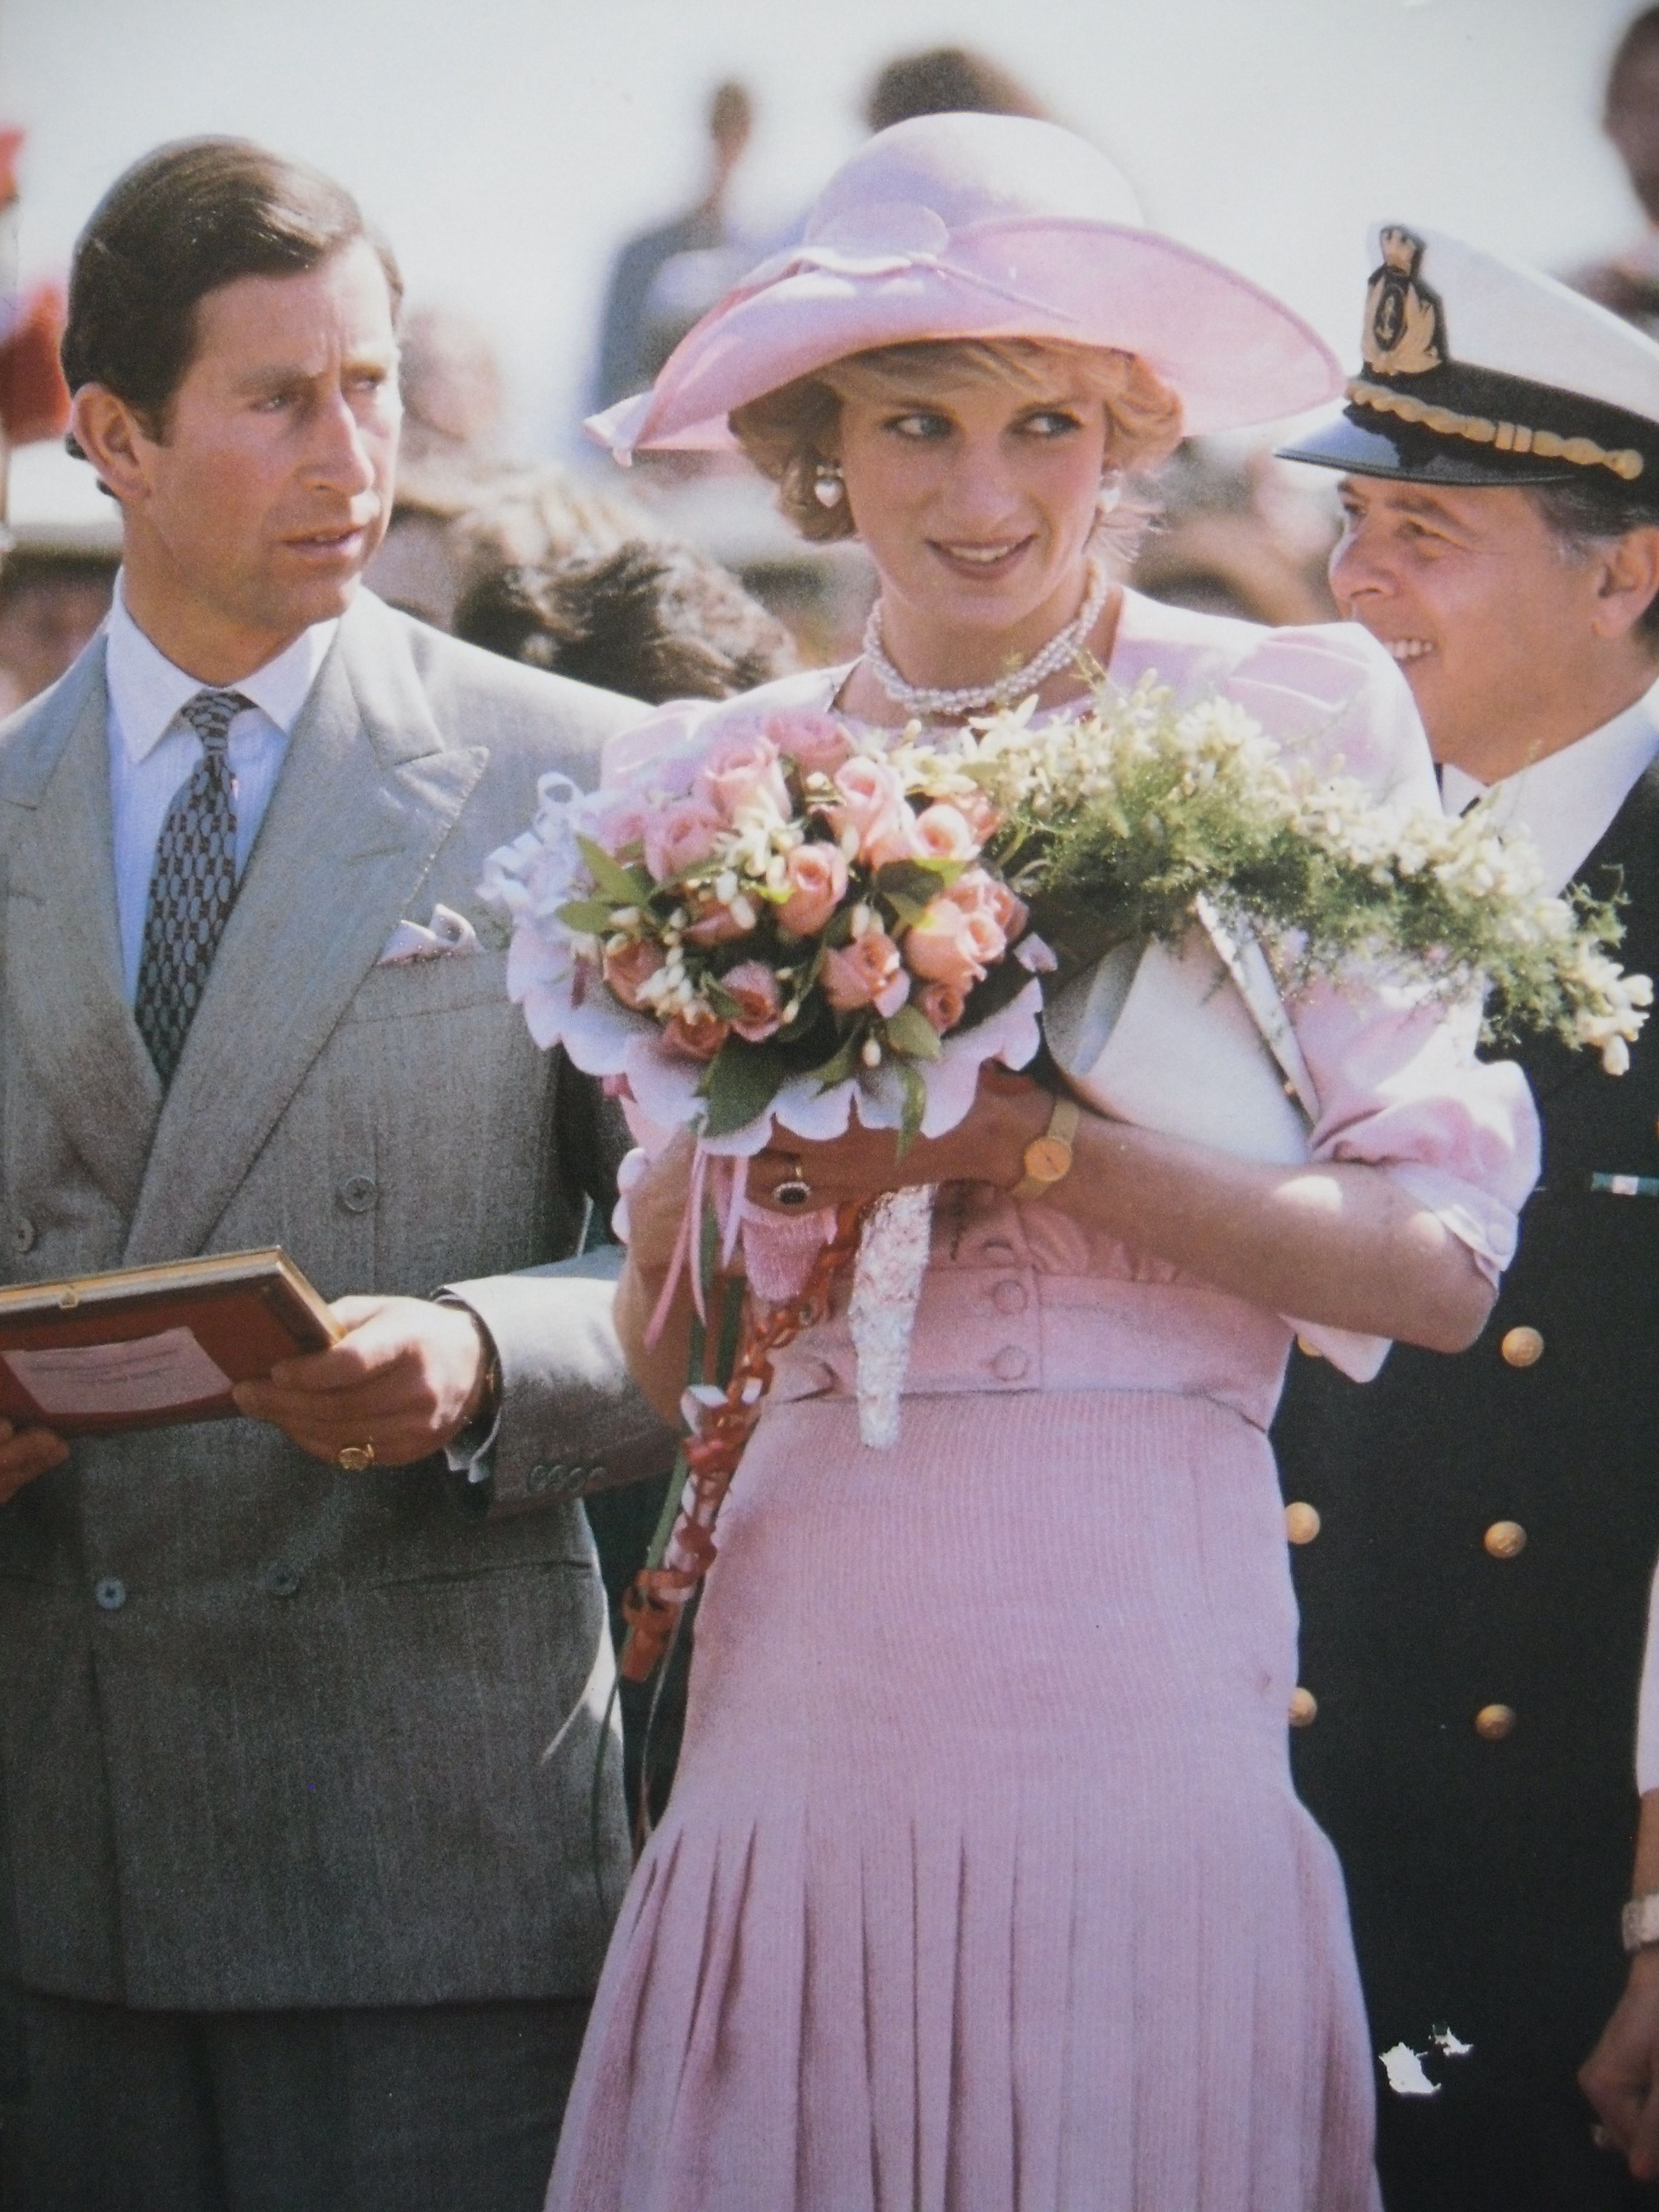 April 30, 1985: Prince Charles & Princess Diana in Catania, Sicily during the Royal Tour of Italy 1985. Day 12.